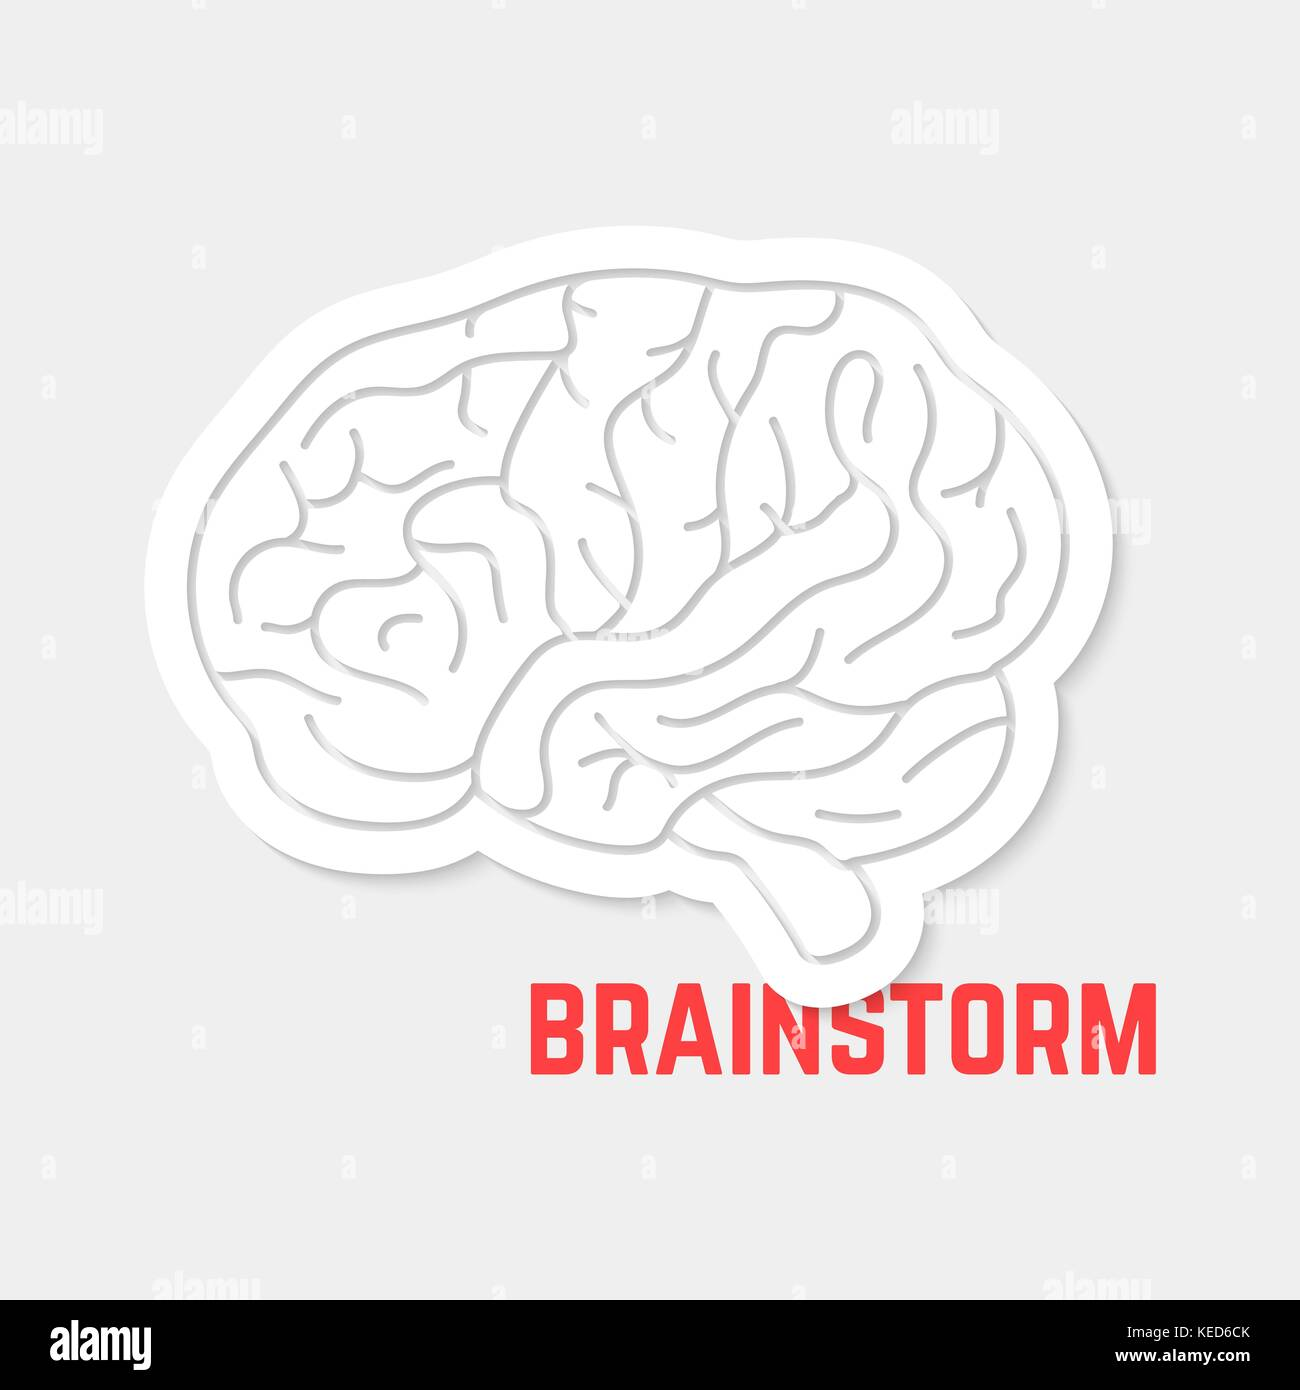 brainstorm with white outline brain icon - Stock Image